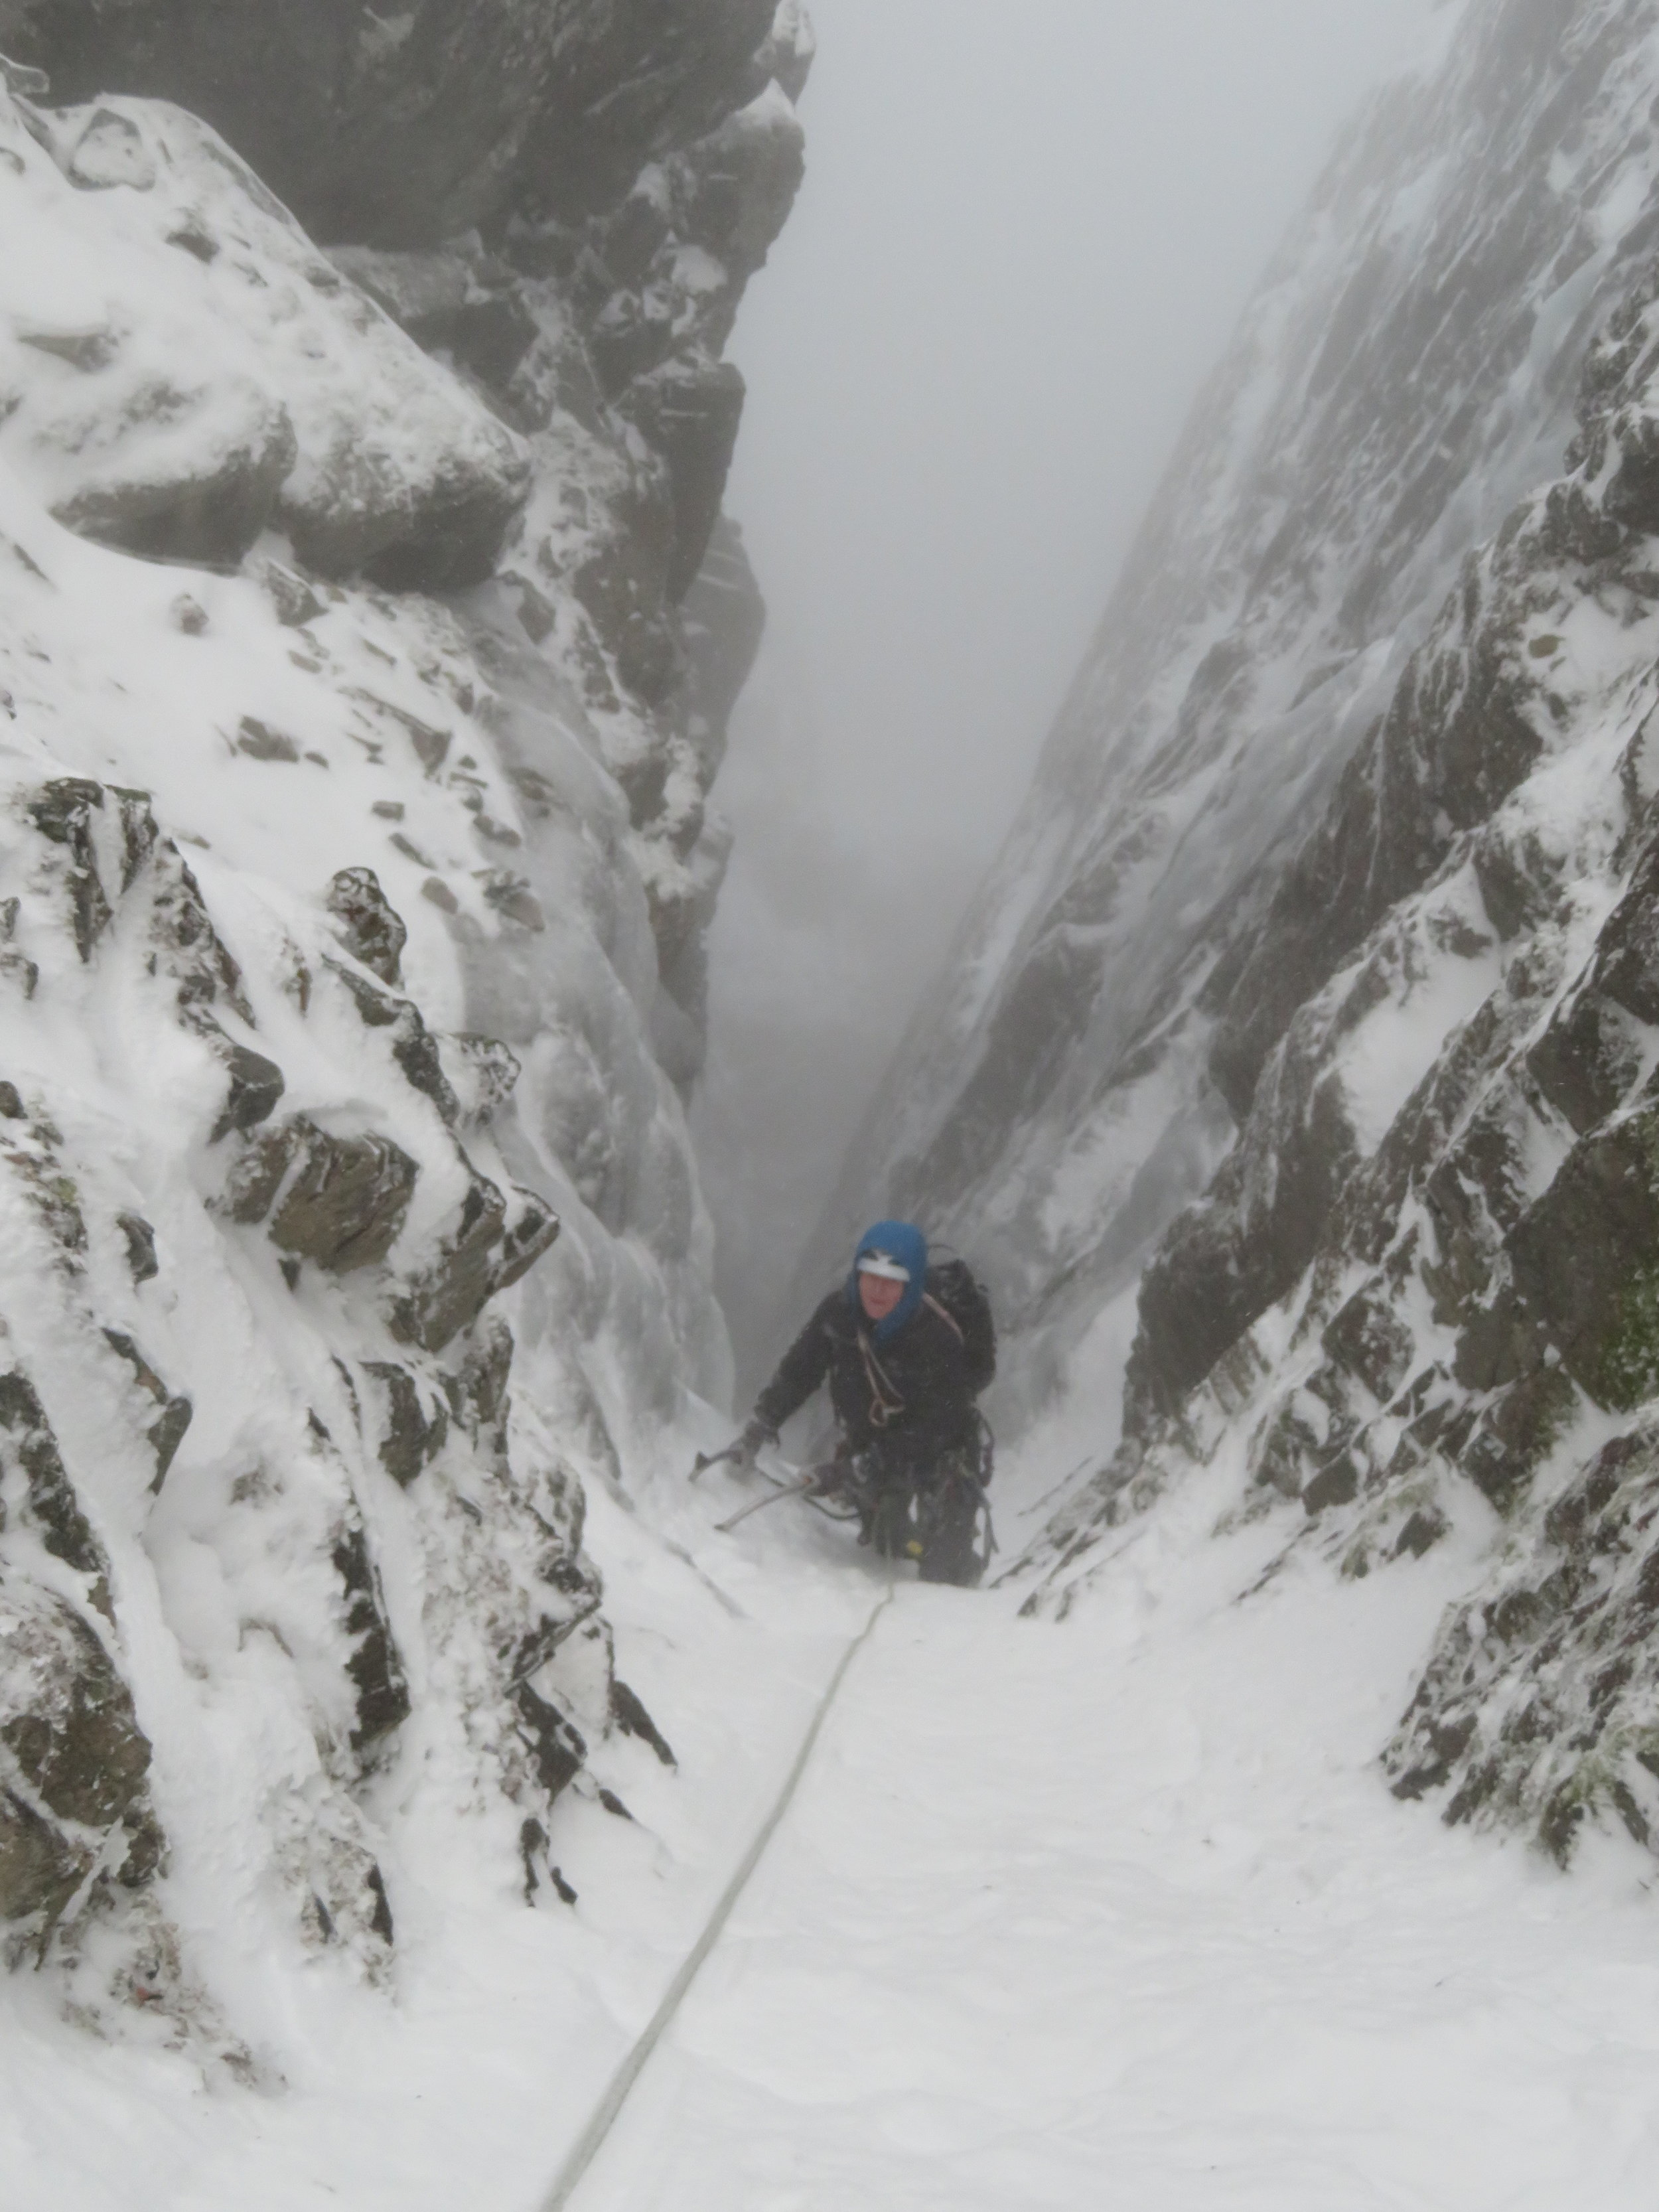 Ben Nevis was feeling very wintery in Number 2 Gully with Alan